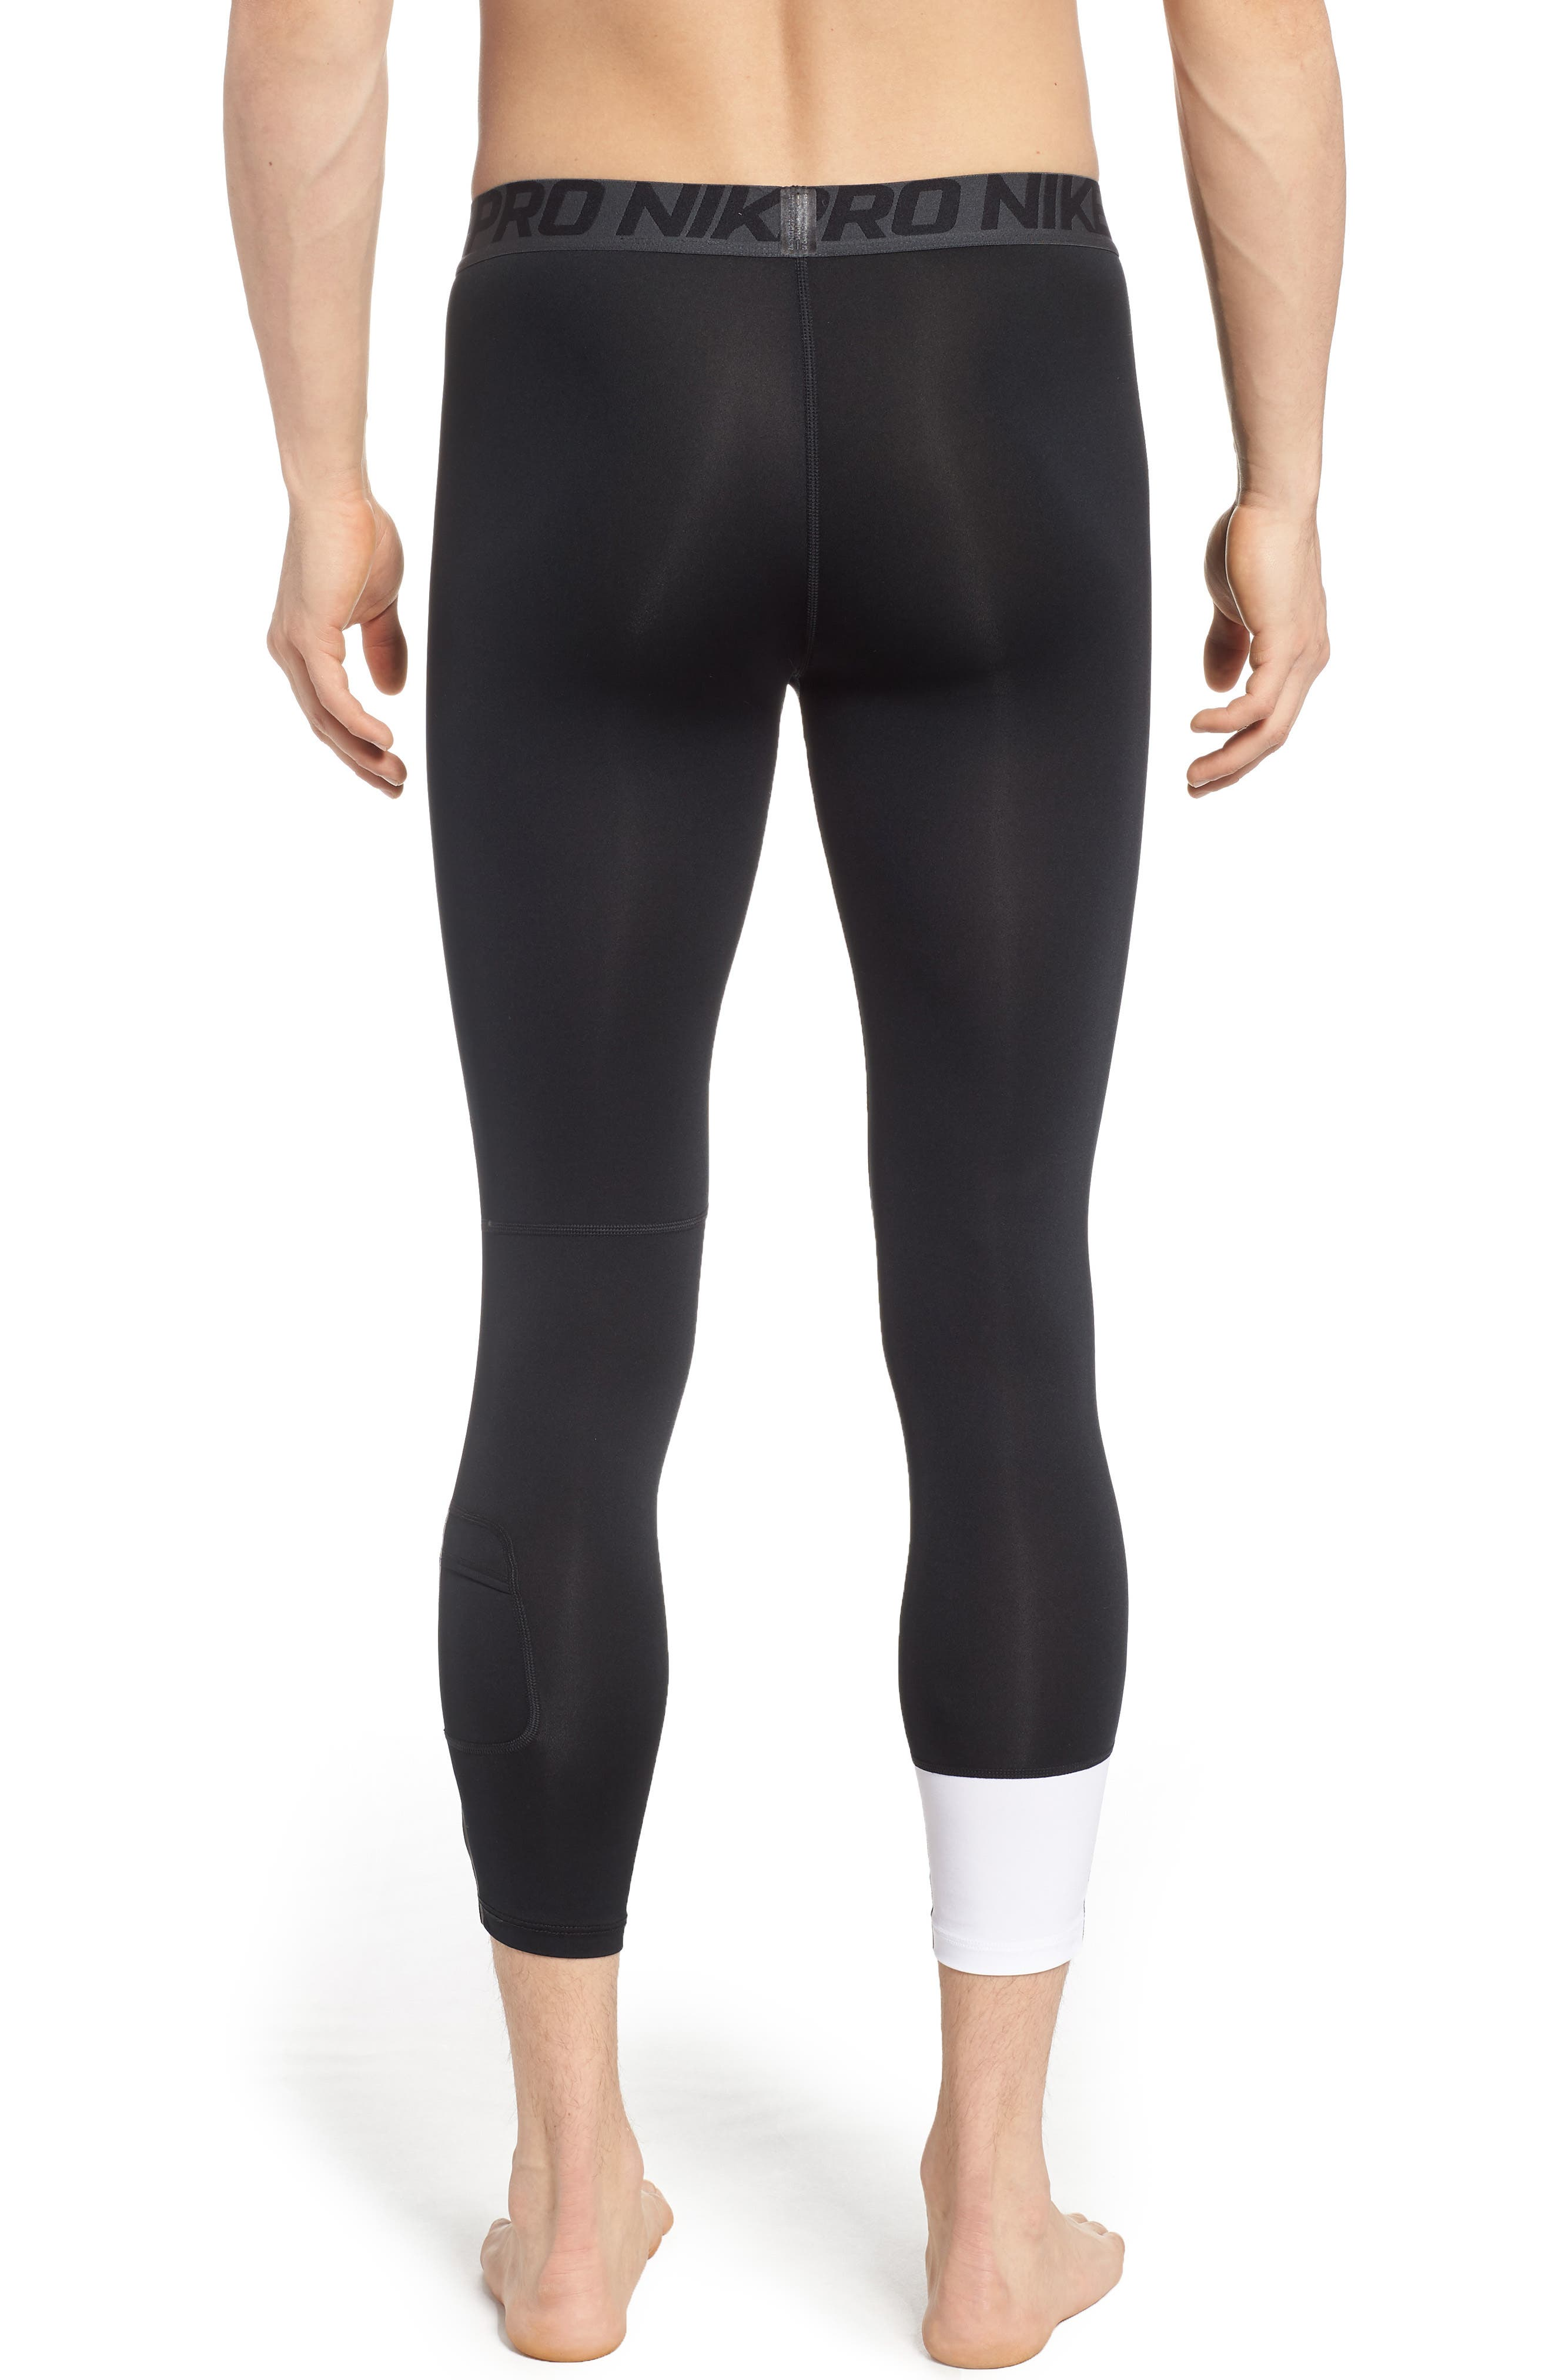 NP Running Tights,                             Alternate thumbnail 2, color,                             010